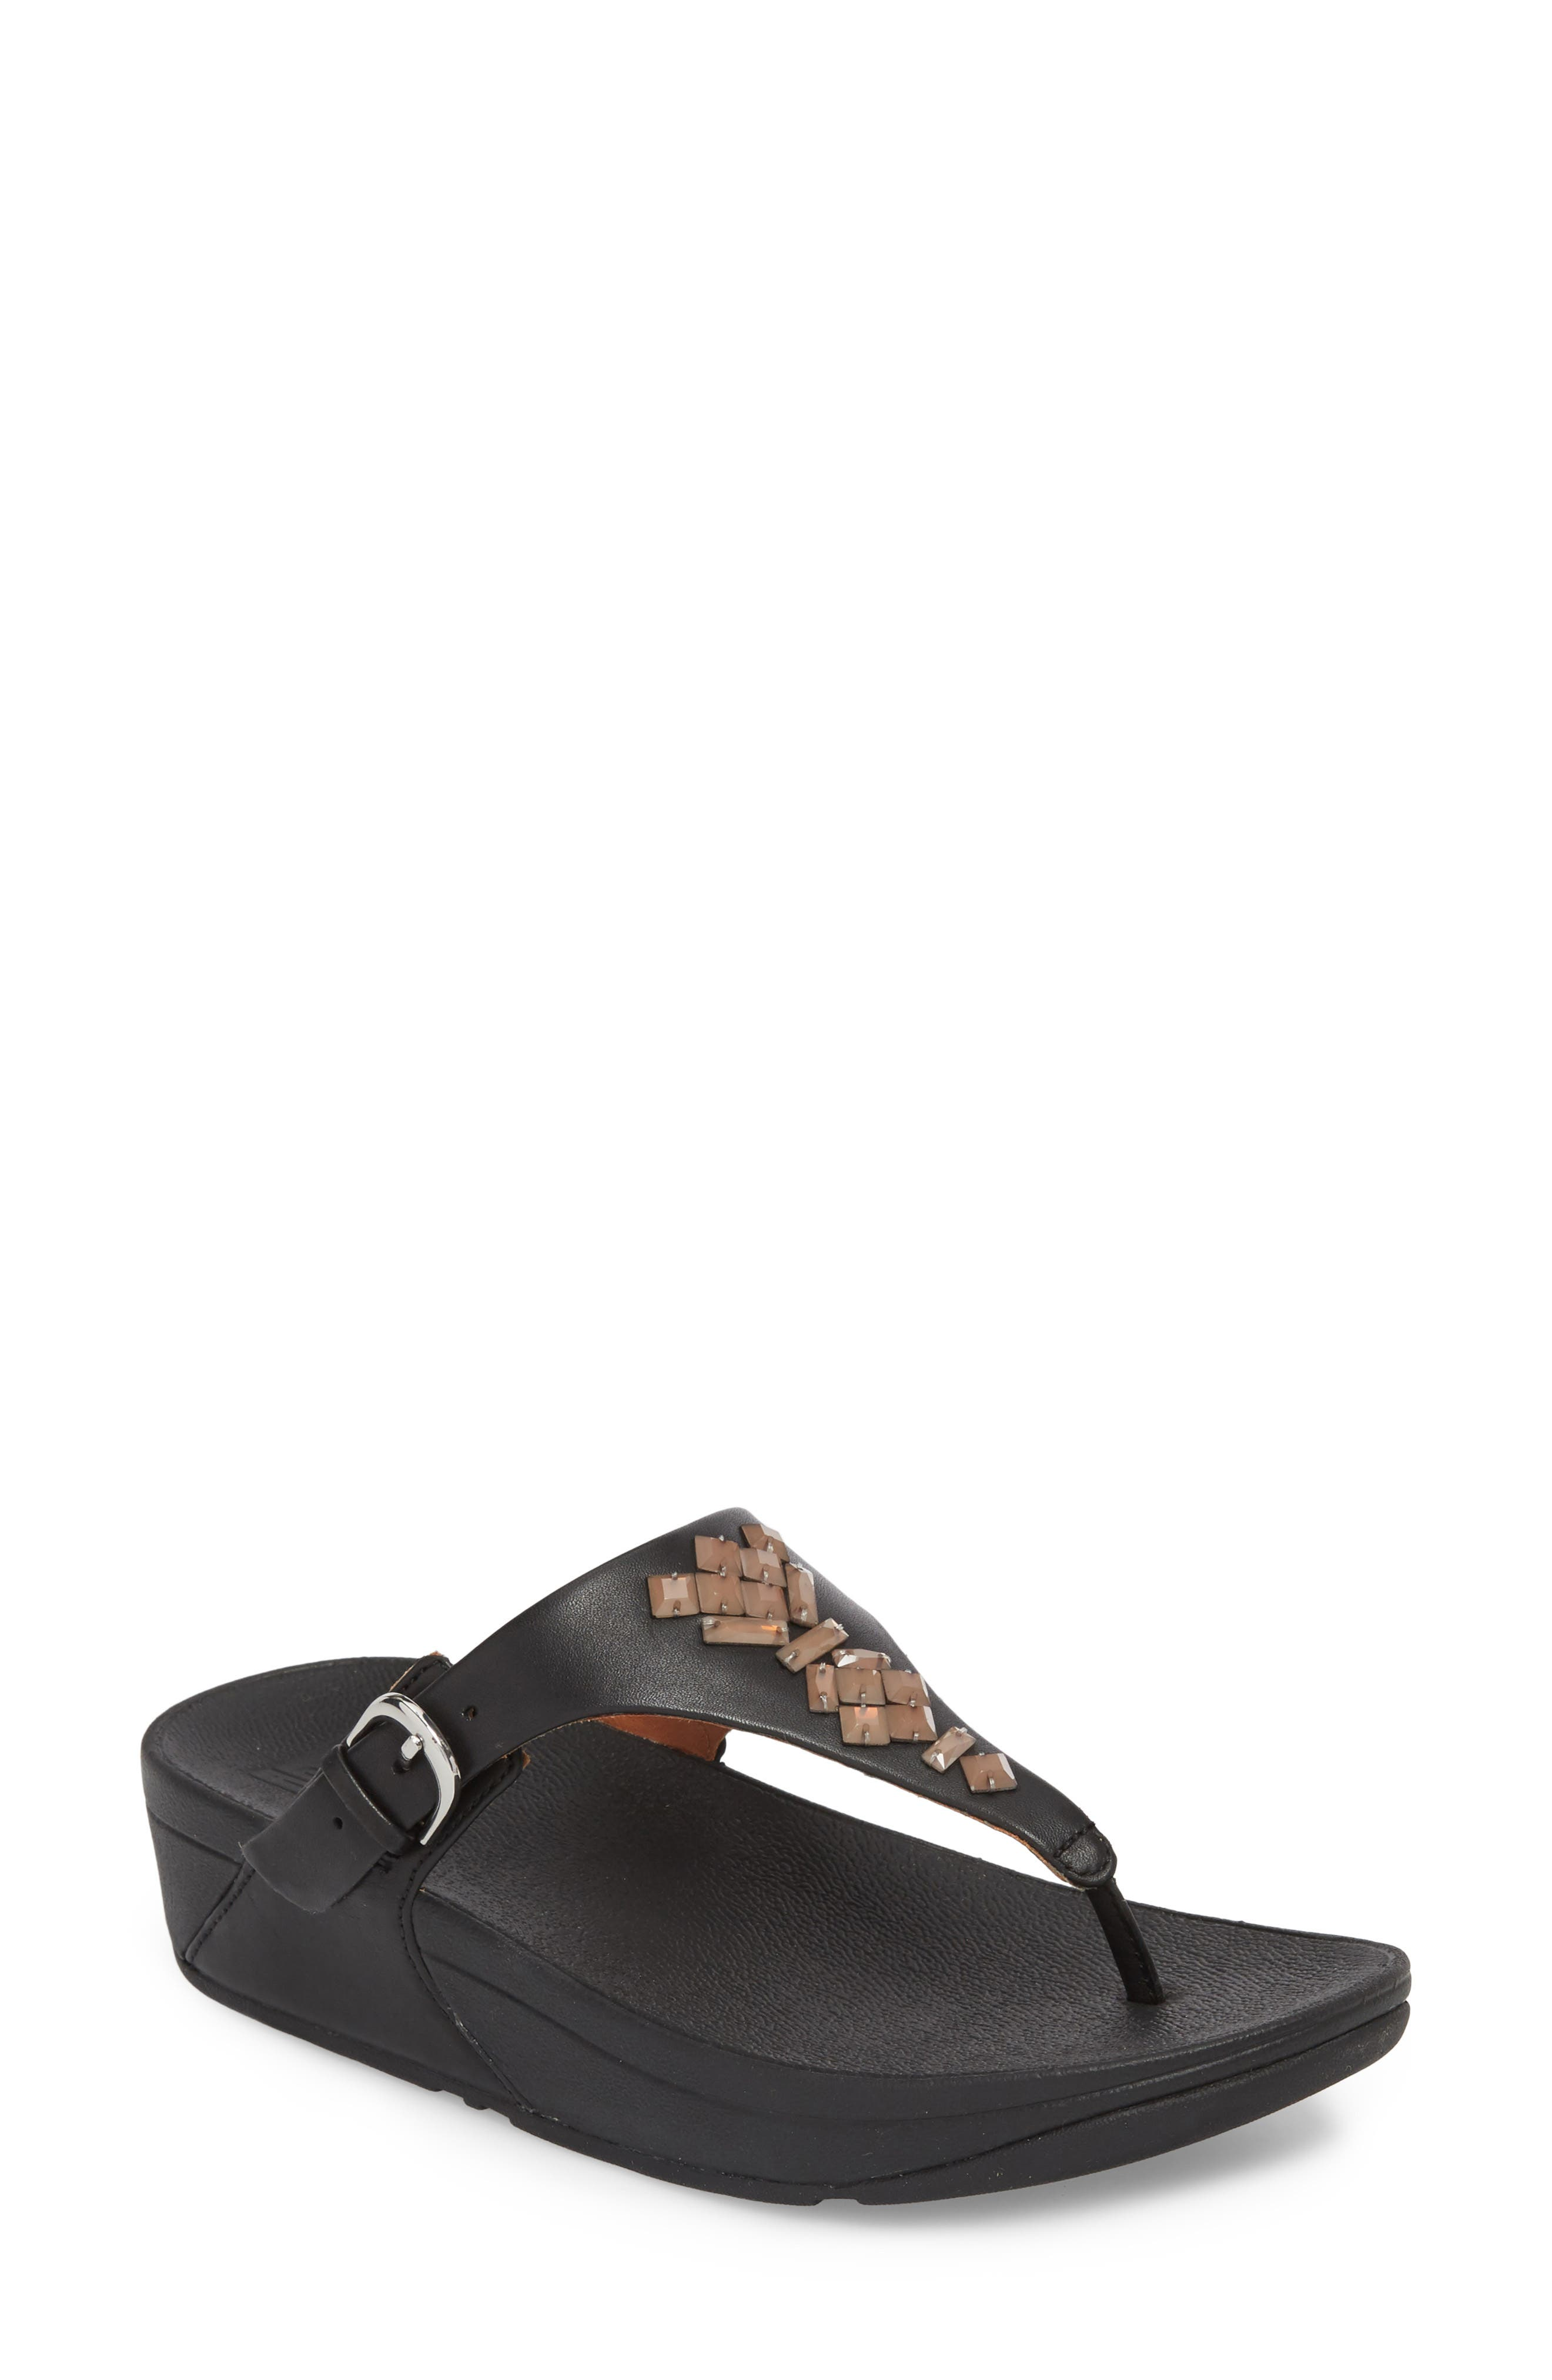 FitFlop Women's The Skinny Embellished V-Strap Thong Sandal DyhDo